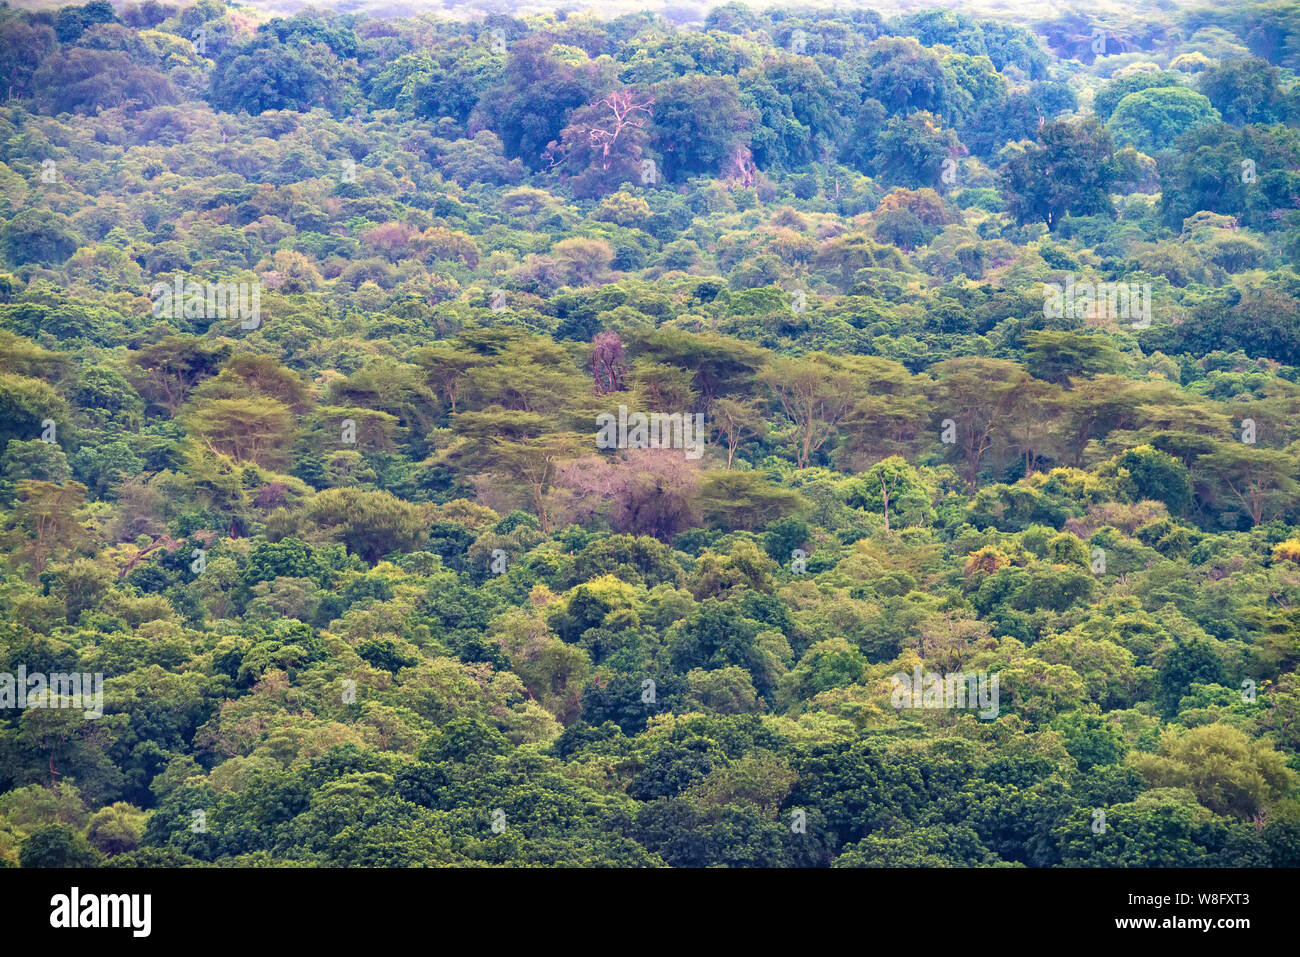 View of lush jungle forest on mountains in Tanzania Stock Photo